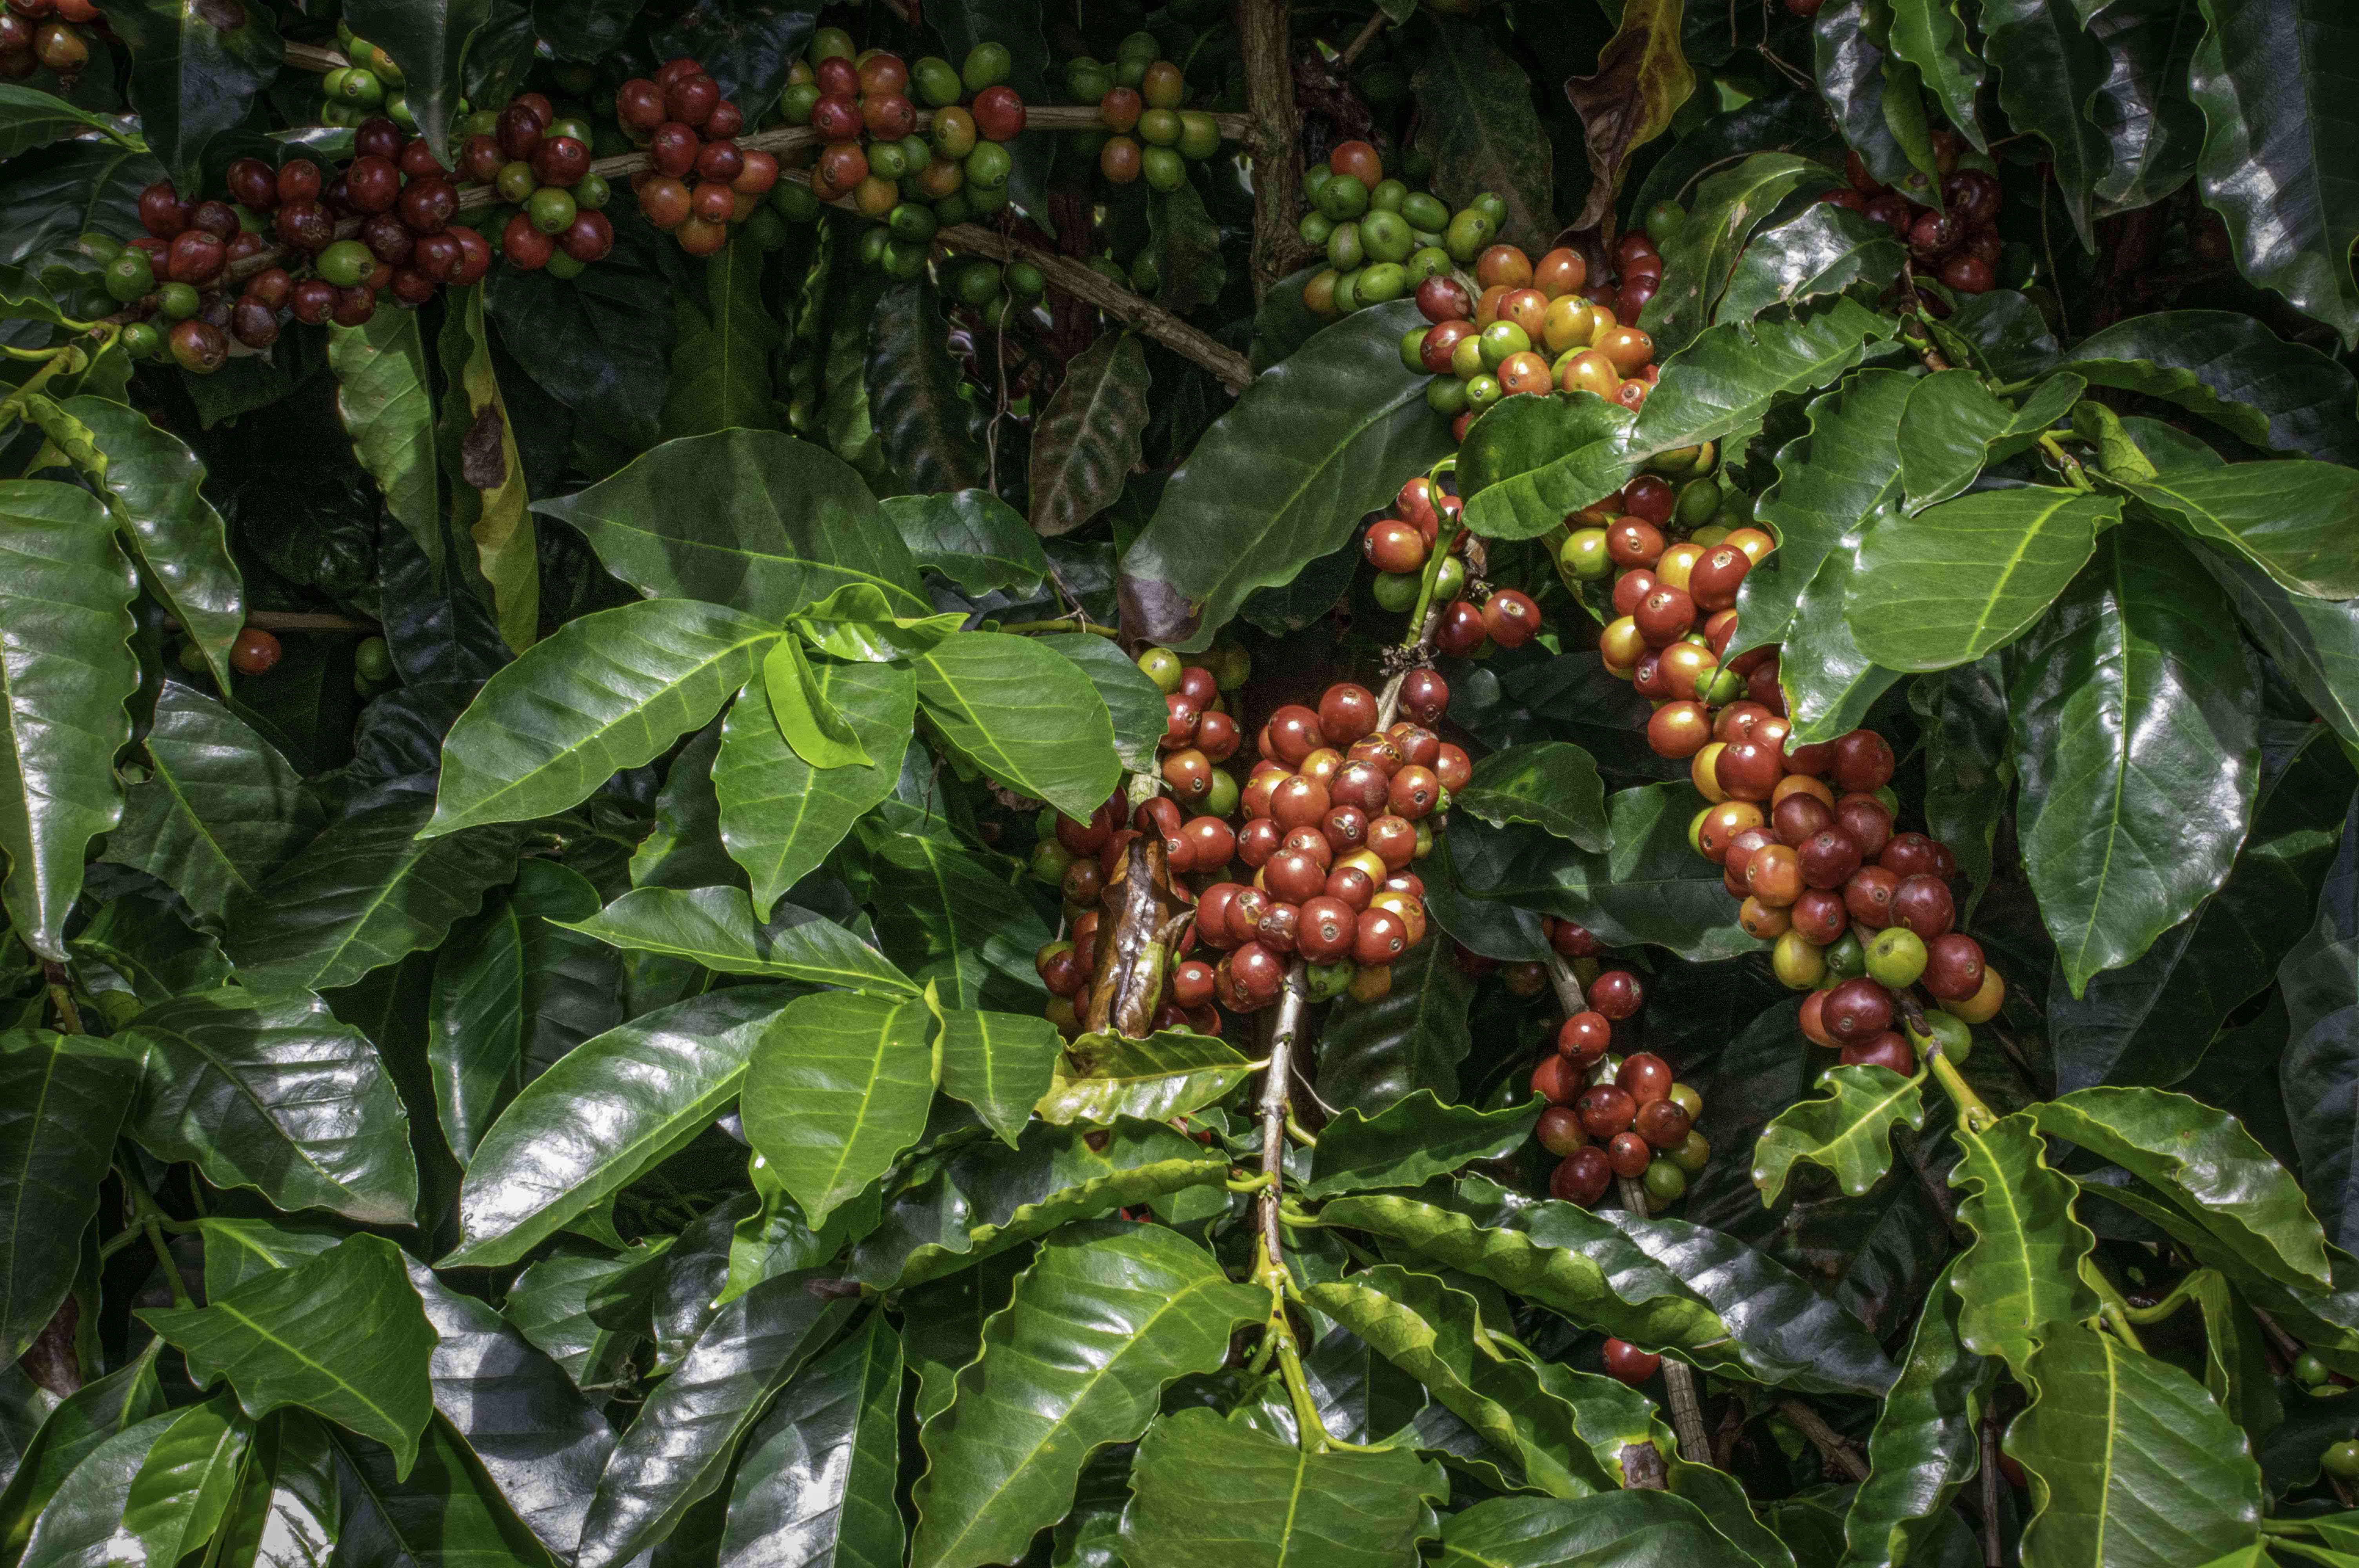 Coffee beans growing on the plant